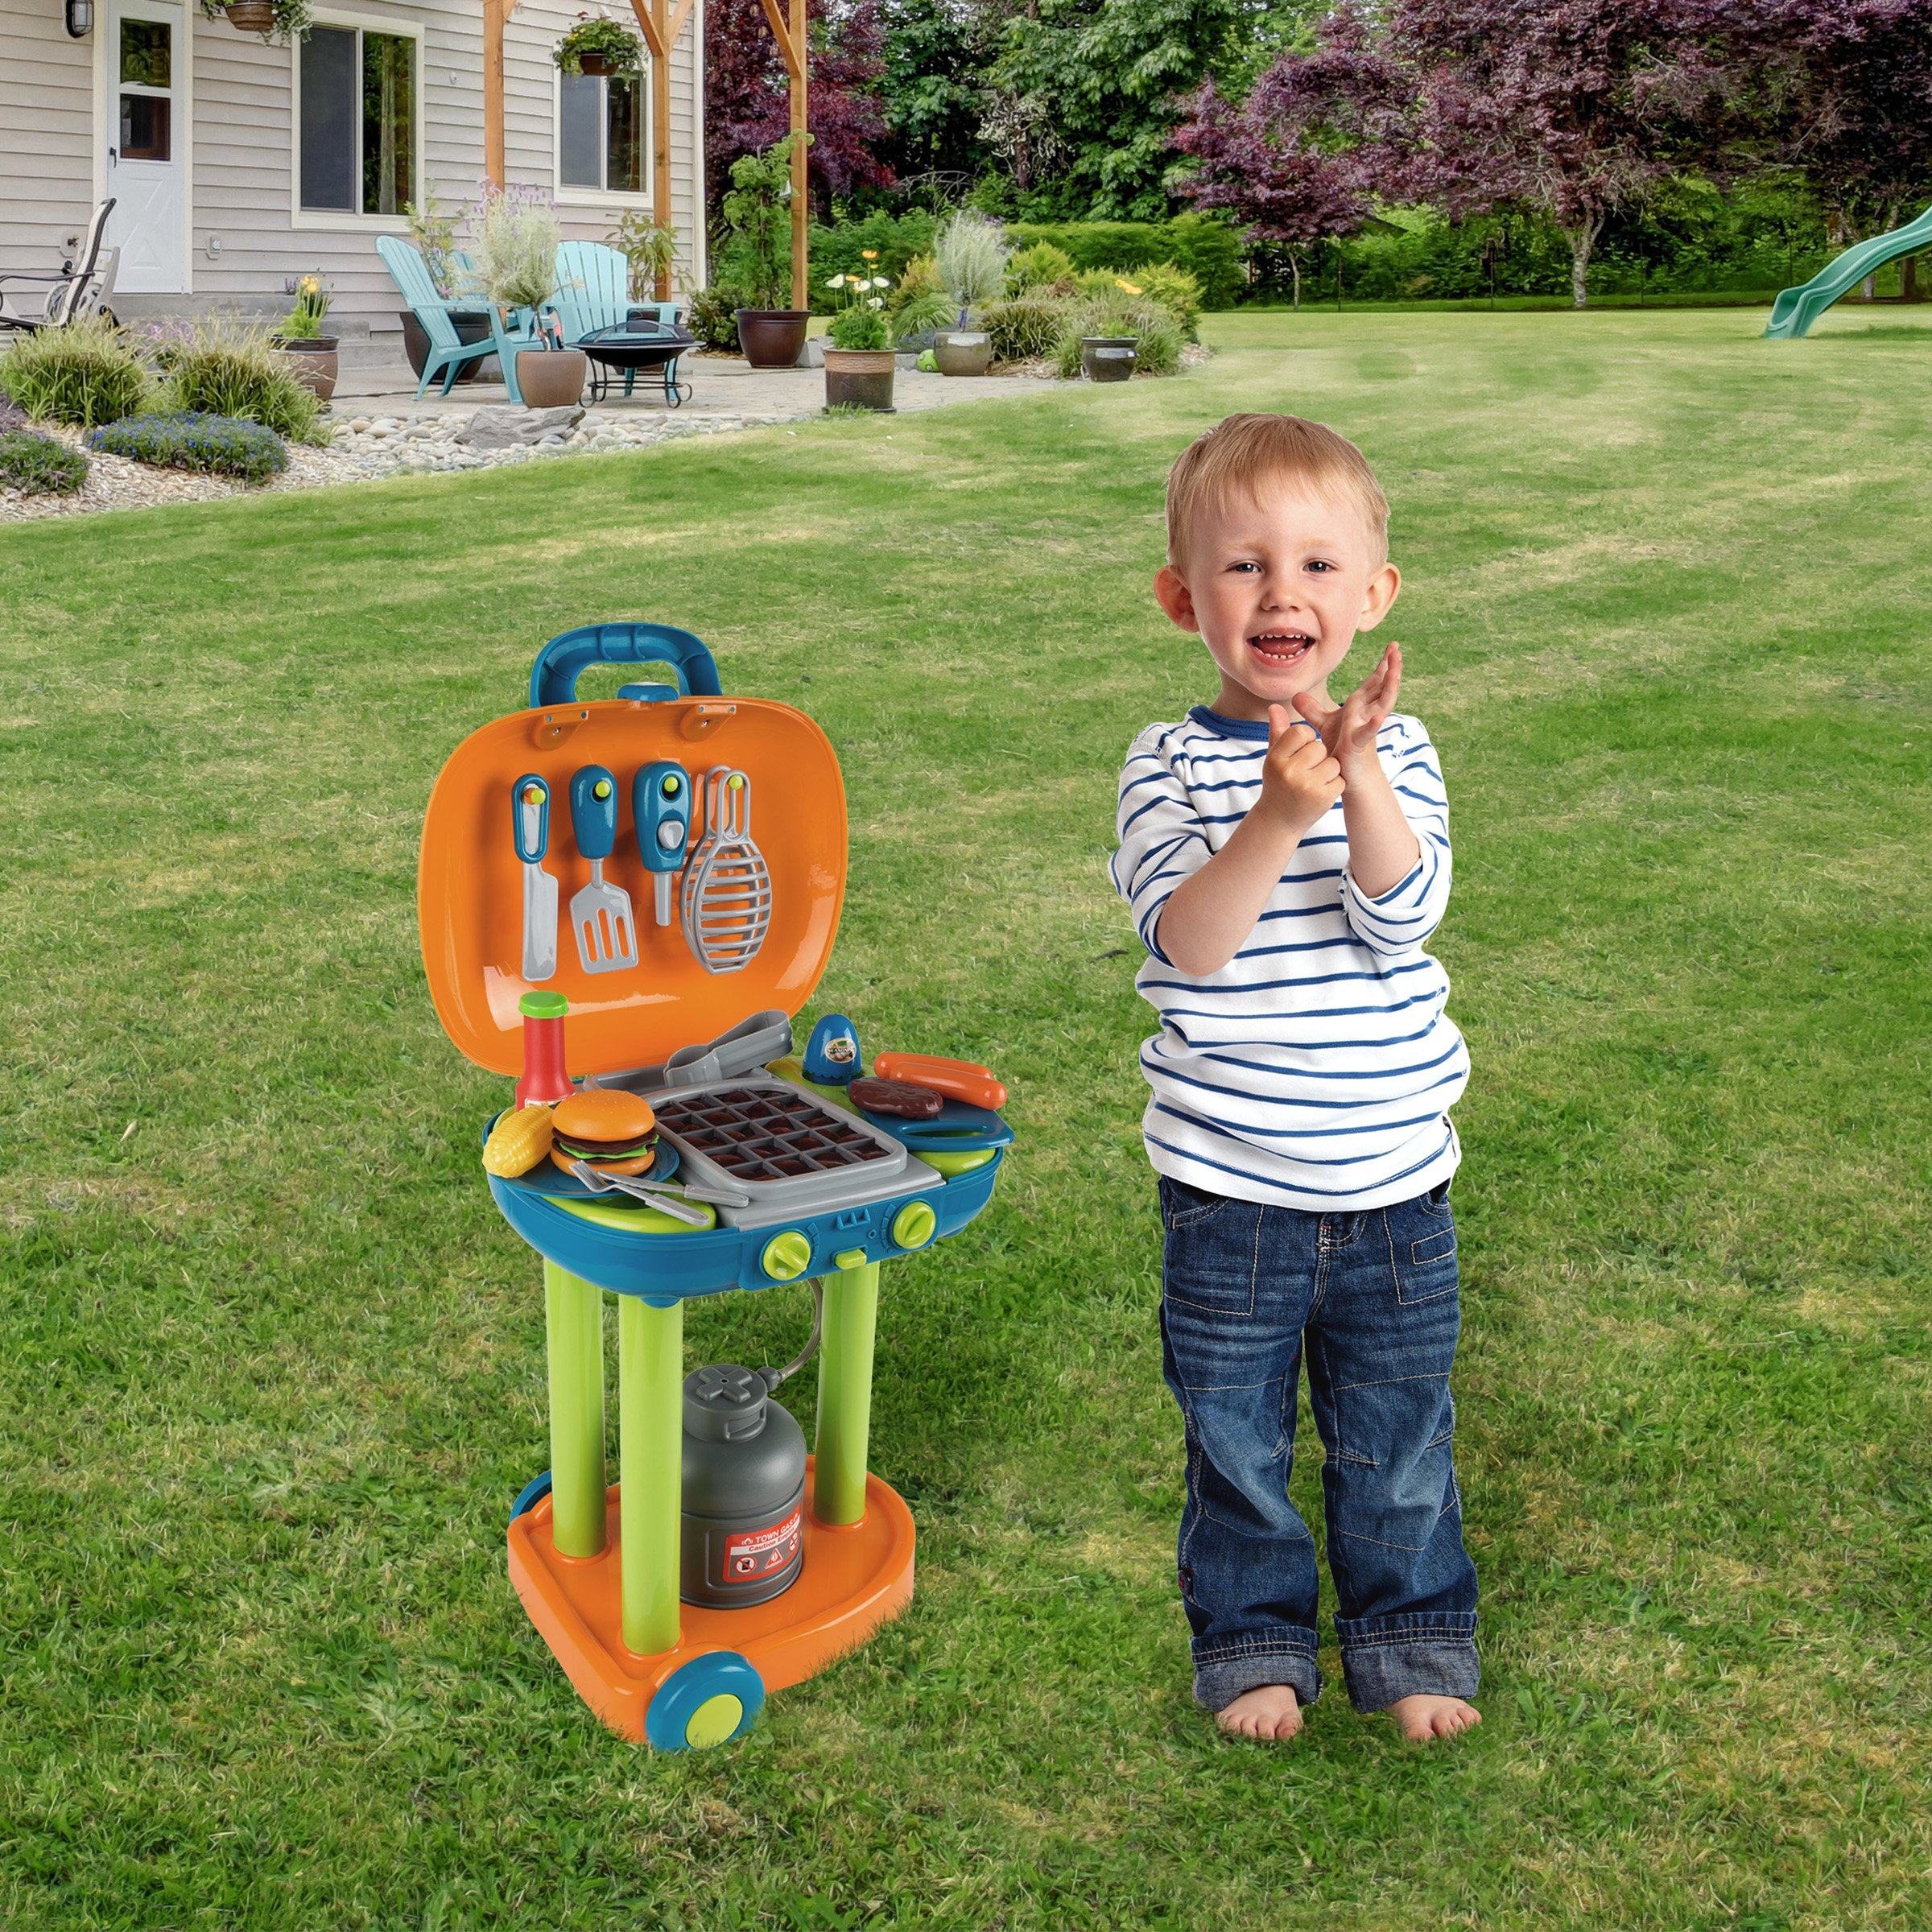 BBQ Grill Toy Set- Kids Dinner Playset with Realistic Sounds and Grate Lights- Includes Barbecue Food and Accessories, Pretend Kitchen by Hey! Play! (Image #7)